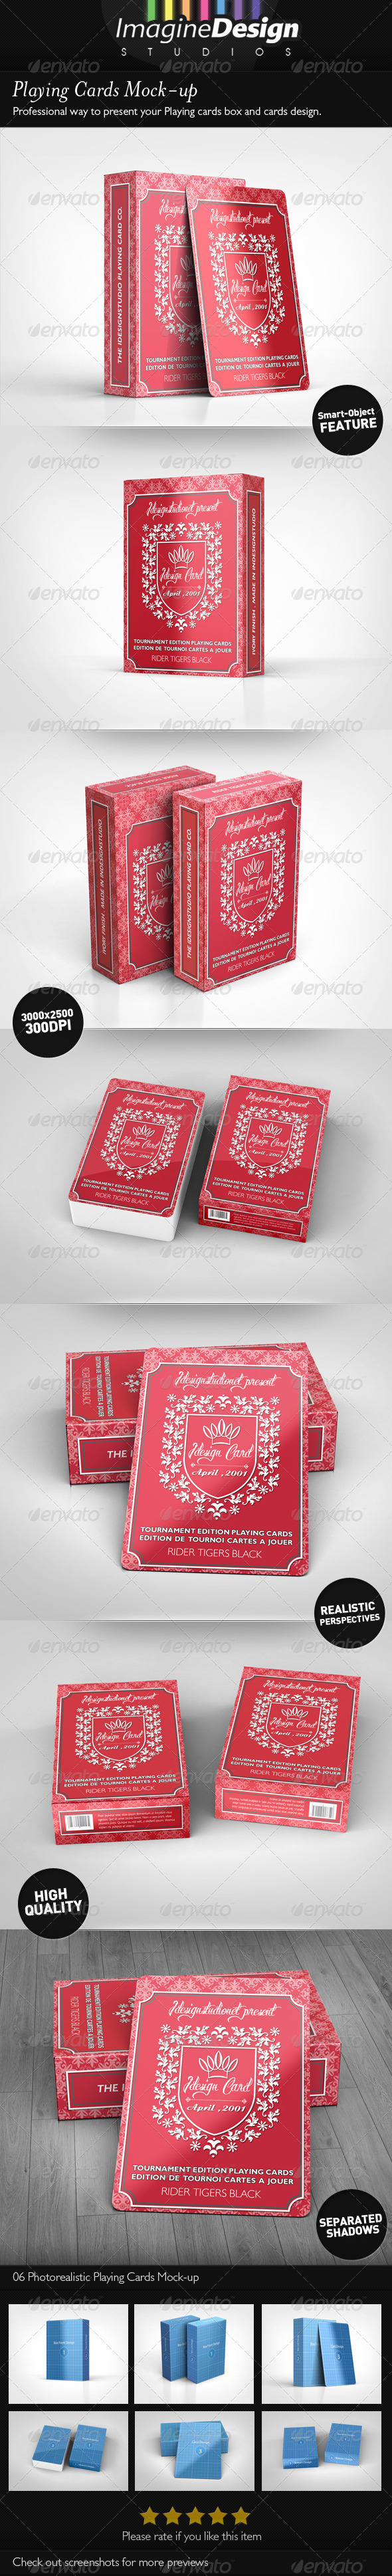 GraphicRiver Playing Cards Mock-up 4622981